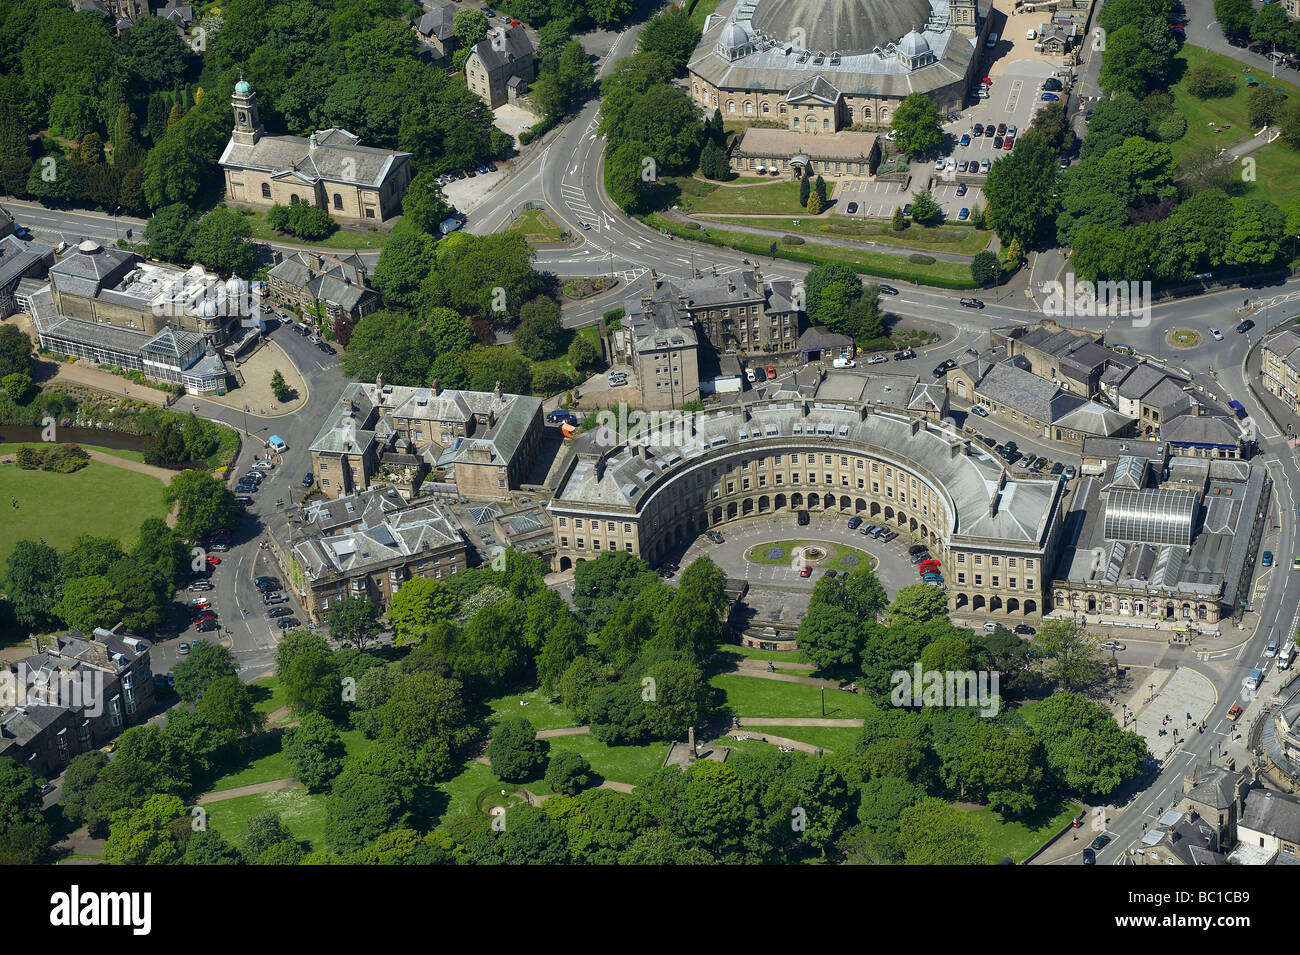 The Crescent, Buxton Derbyshire, Northern England - Stock Image